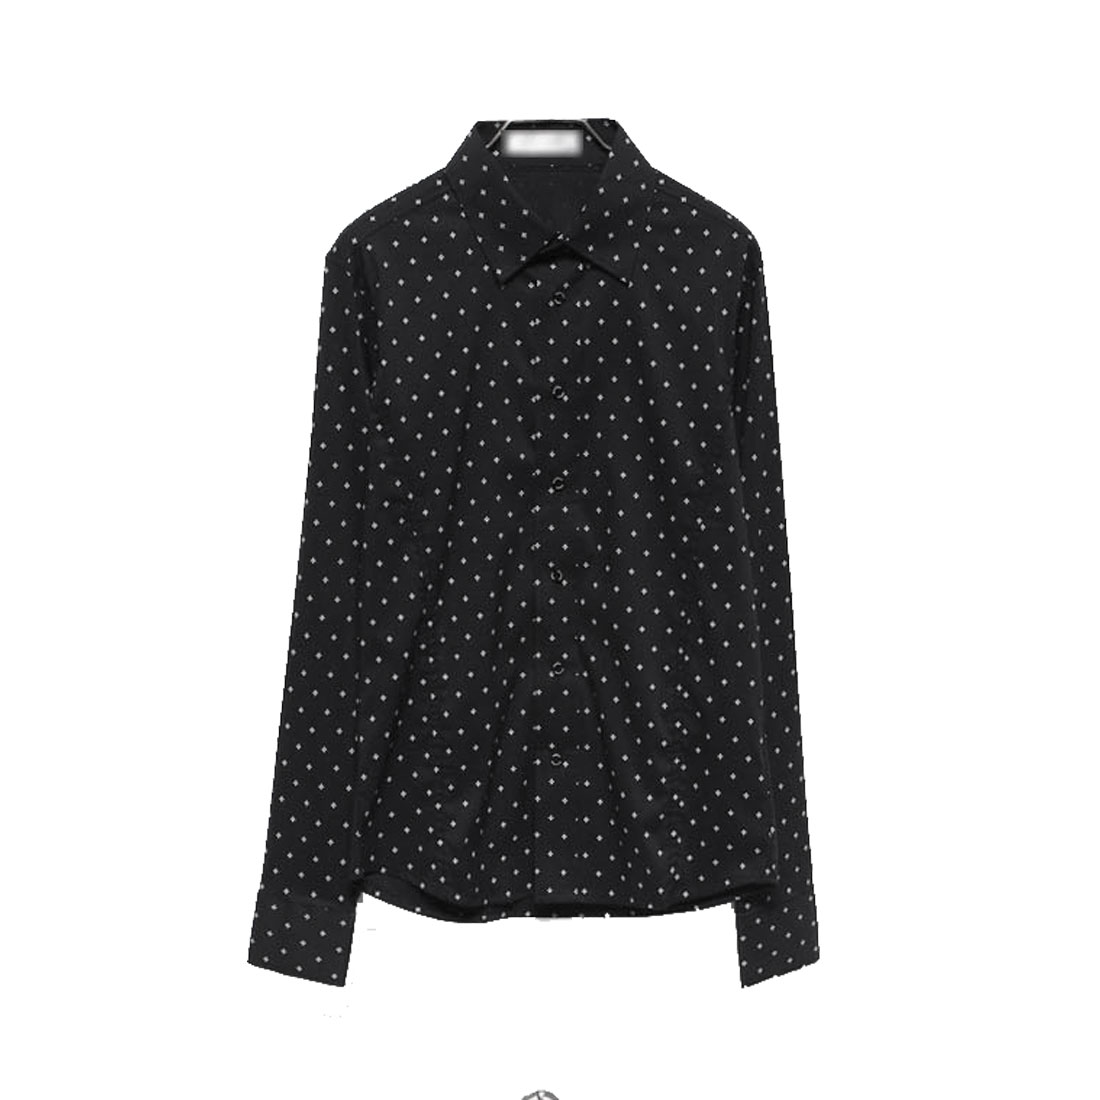 Men's Point Collar Buttoned Cuffs Flower Pattern Long Sleeves Black M Shirt